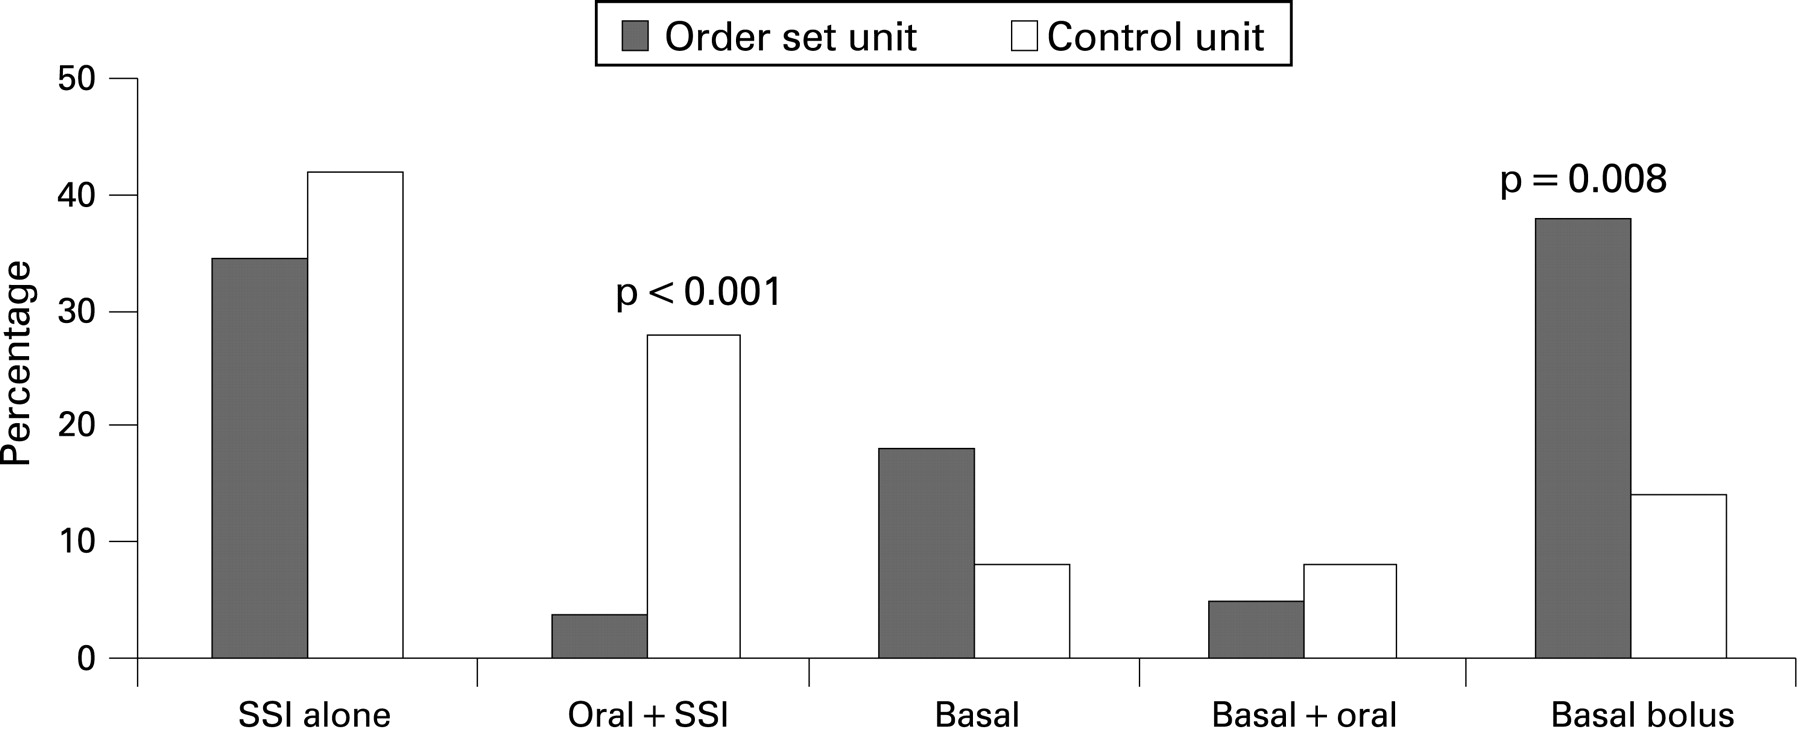 Effect of a diabetes order set on glycaemic management and